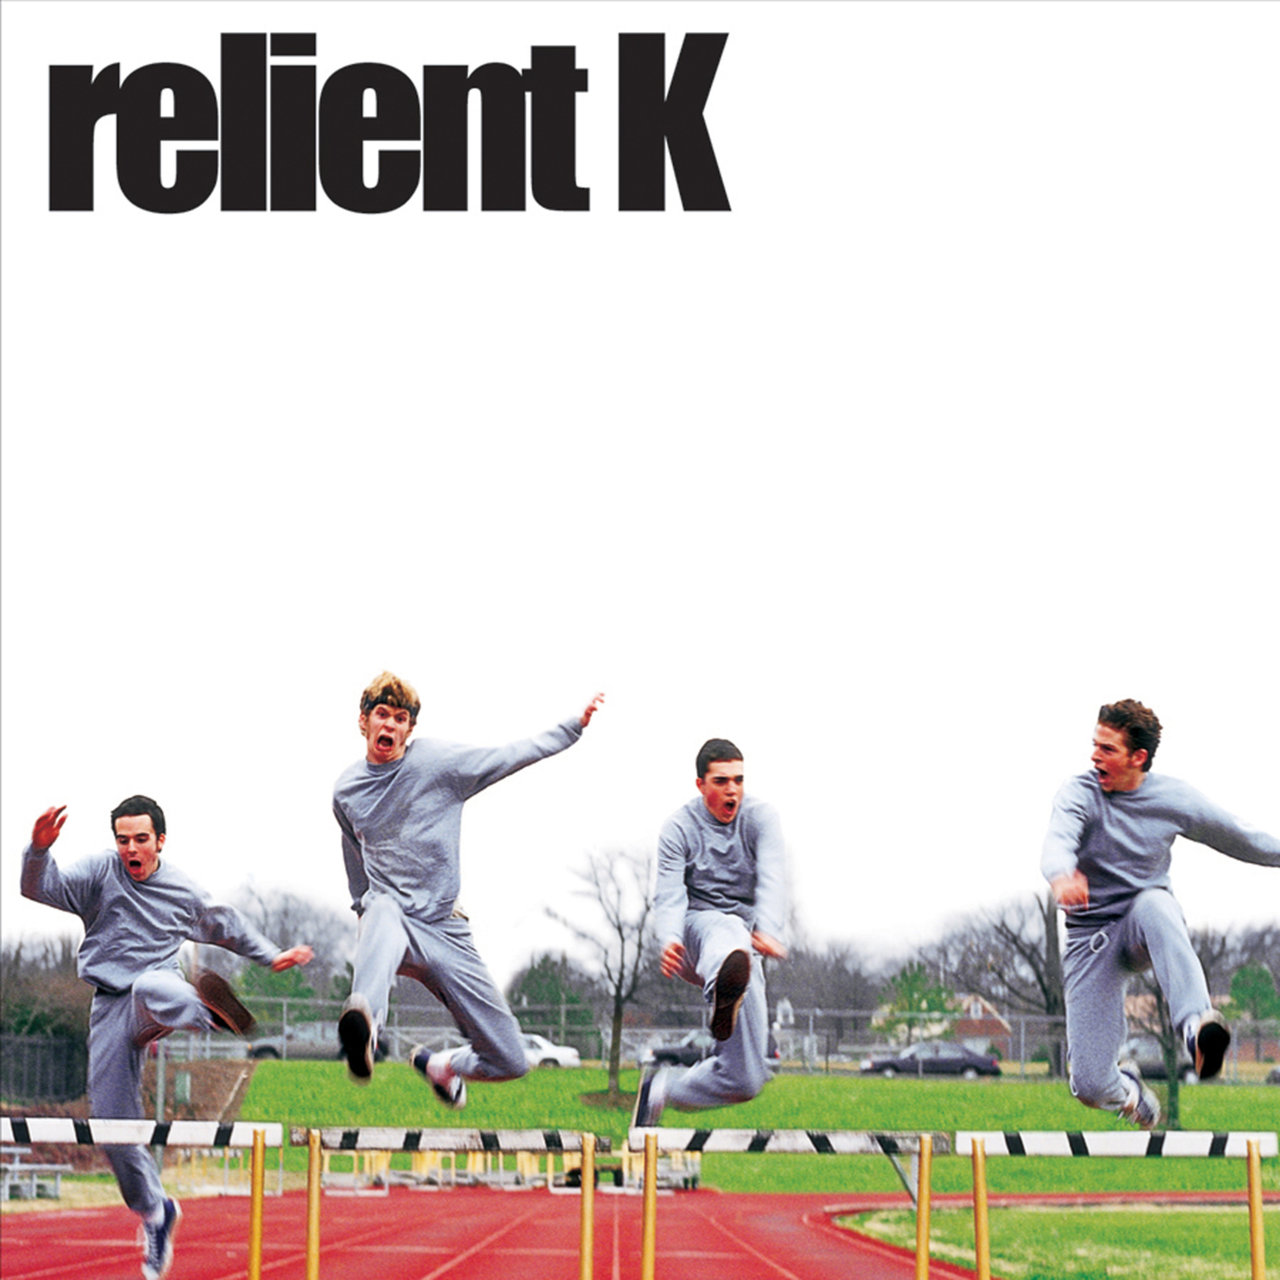 Contemporary Relient K The Anatomy Of The Tongue In Cheek Photo ...